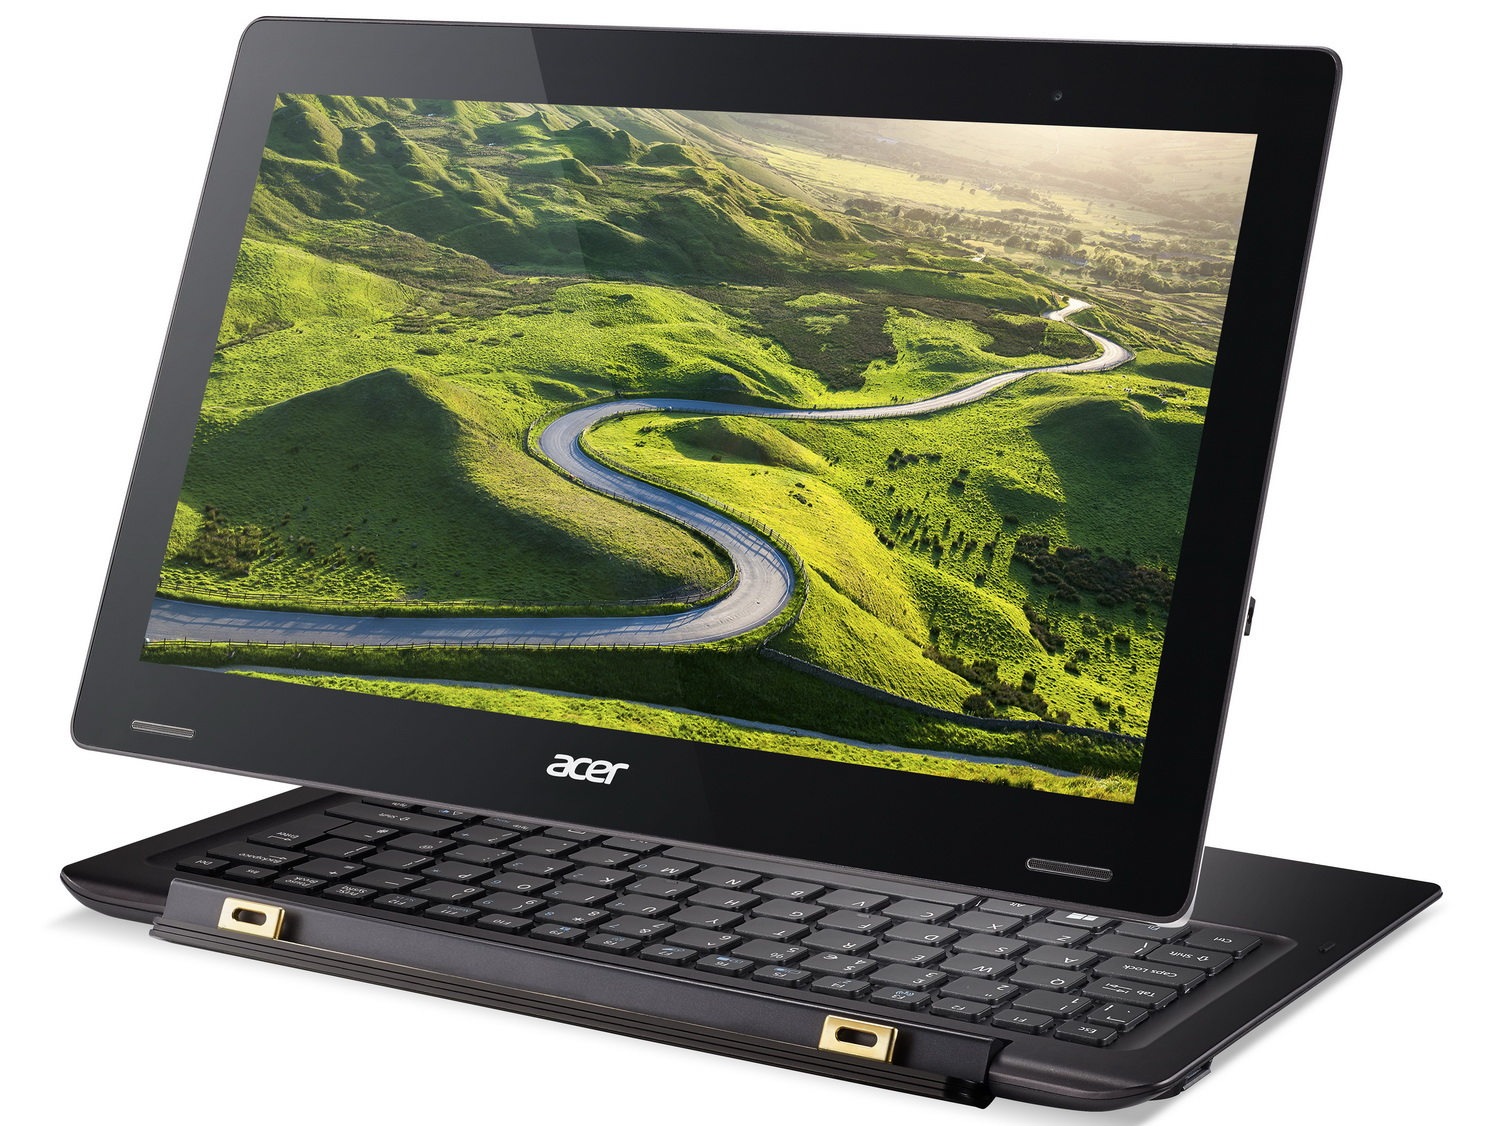 Acer Switch 12 S Pro 600 04